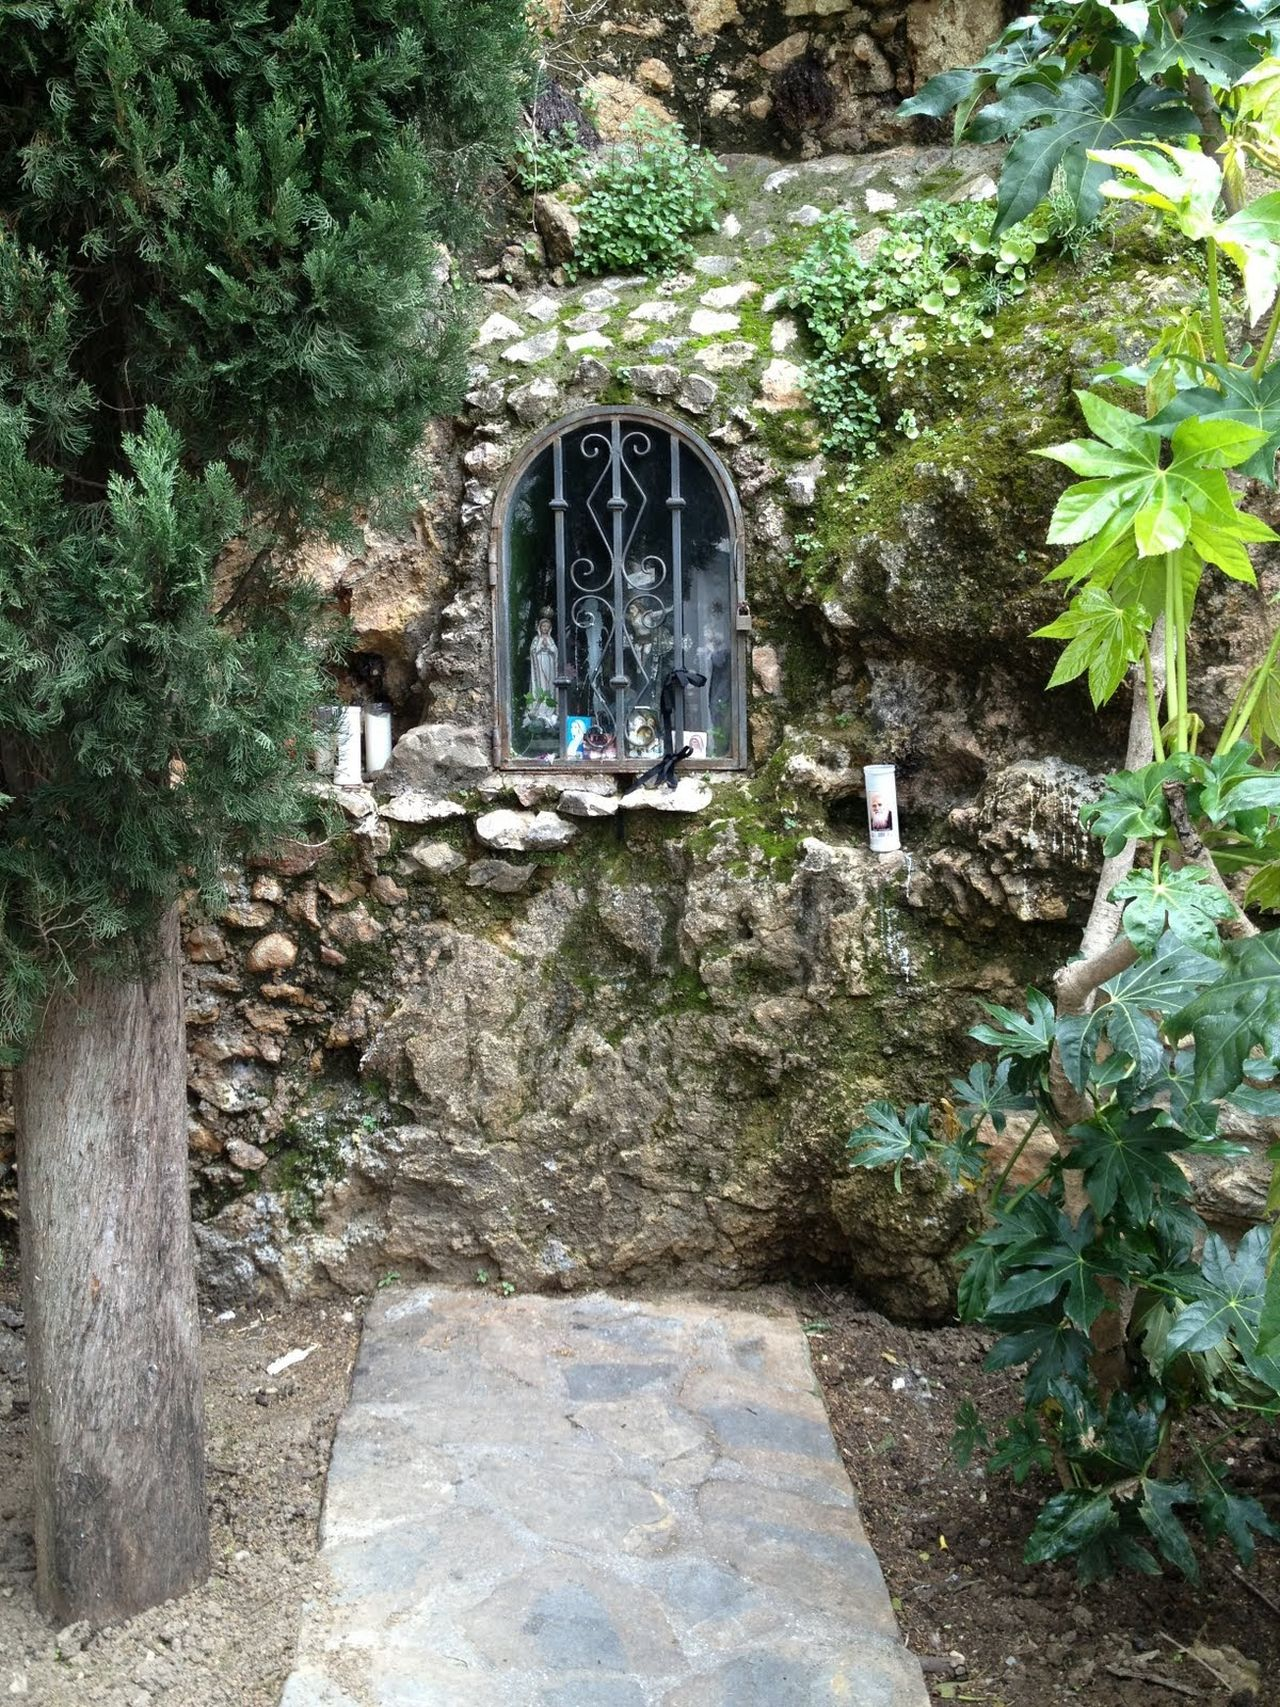 Day Ivy Nature No People Outdoors Plant Religious  Religious Architecture Statue Tree Architecture Tranquility Meditation Meditative Spot Sacred Shrine Shrine Gate Reflective Wall Wall - Building Feature Wall Art Stone Wall Stone Wall And Shrine Wall With Insert Shrine Collection